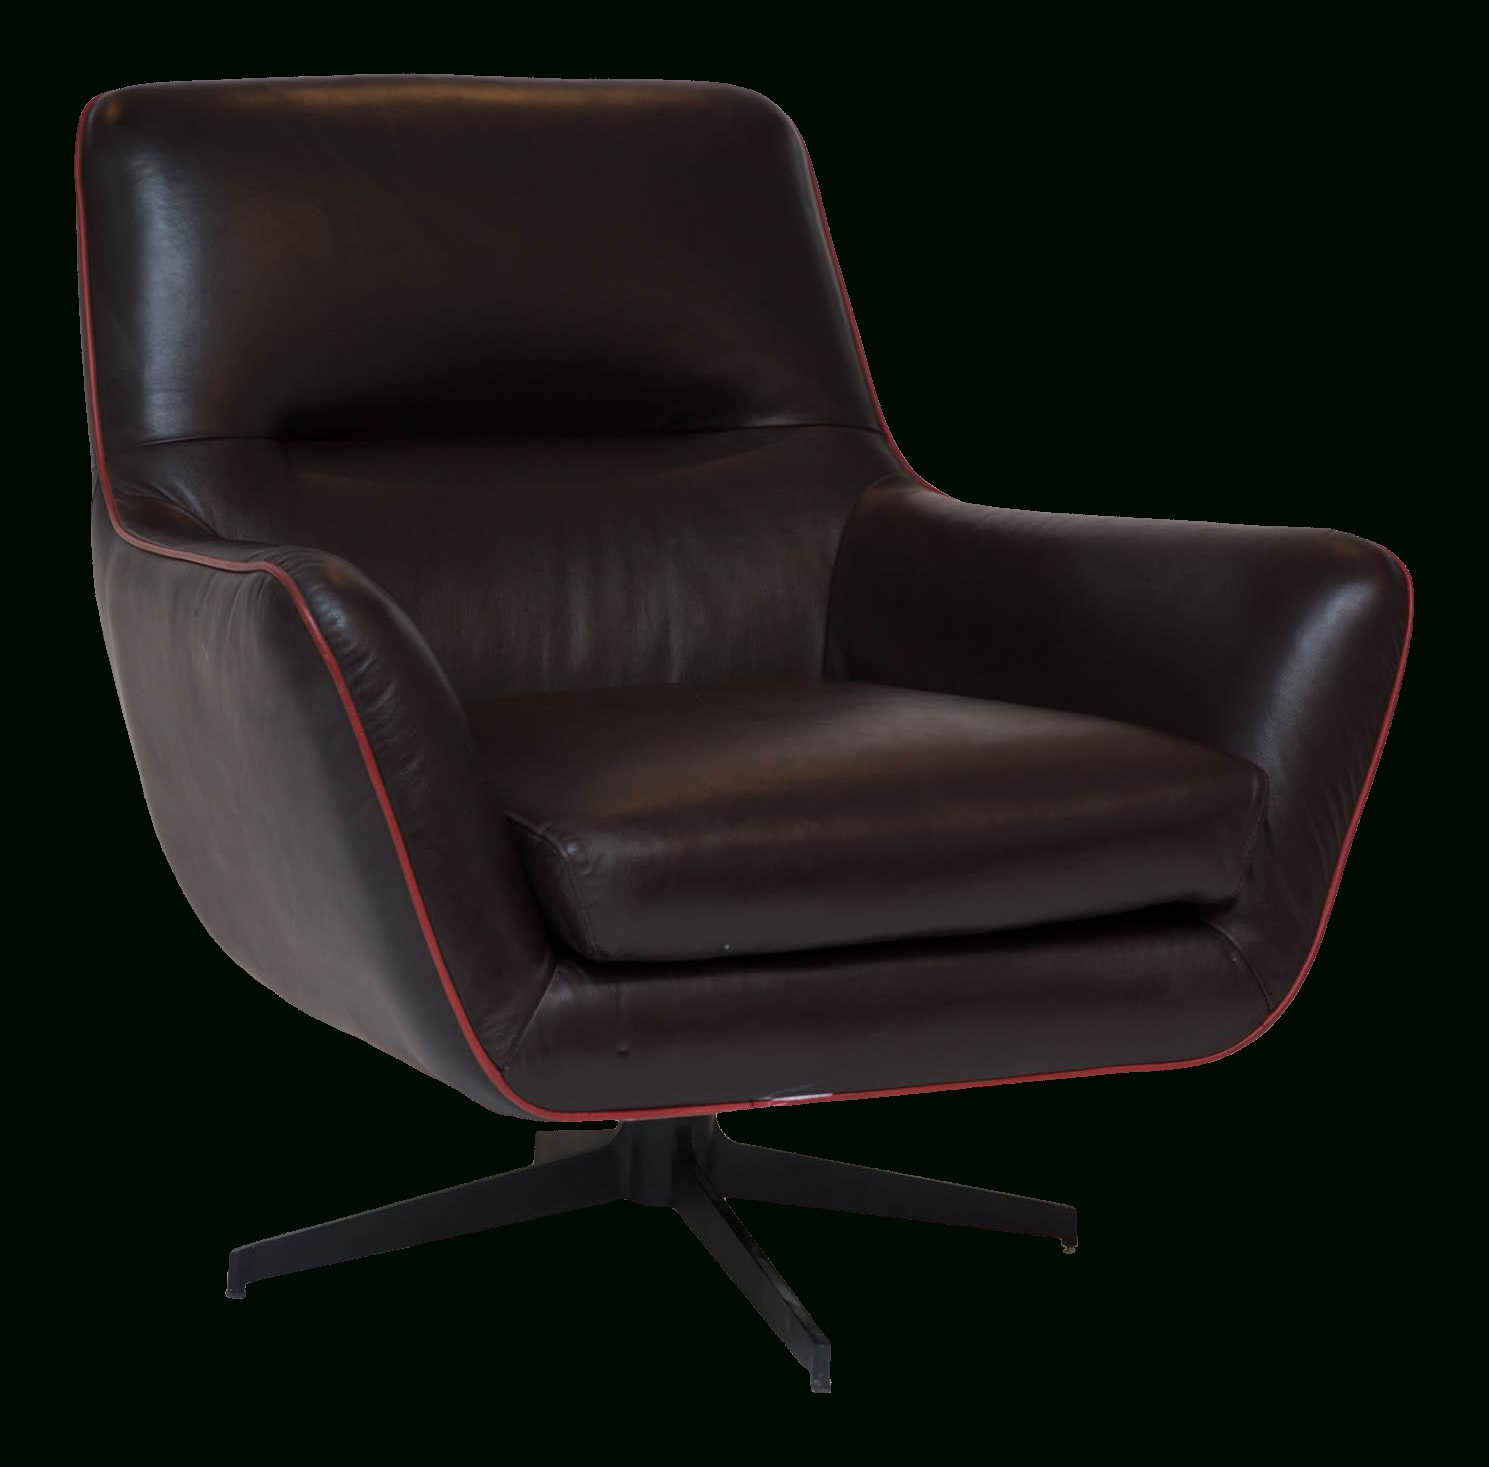 Clean Brown Leather Swivel Chair Trimmed In Red Leather Piping. Well For Chocolate Brown Leather Tufted Swivel Chairs (Photo 3 of 20)